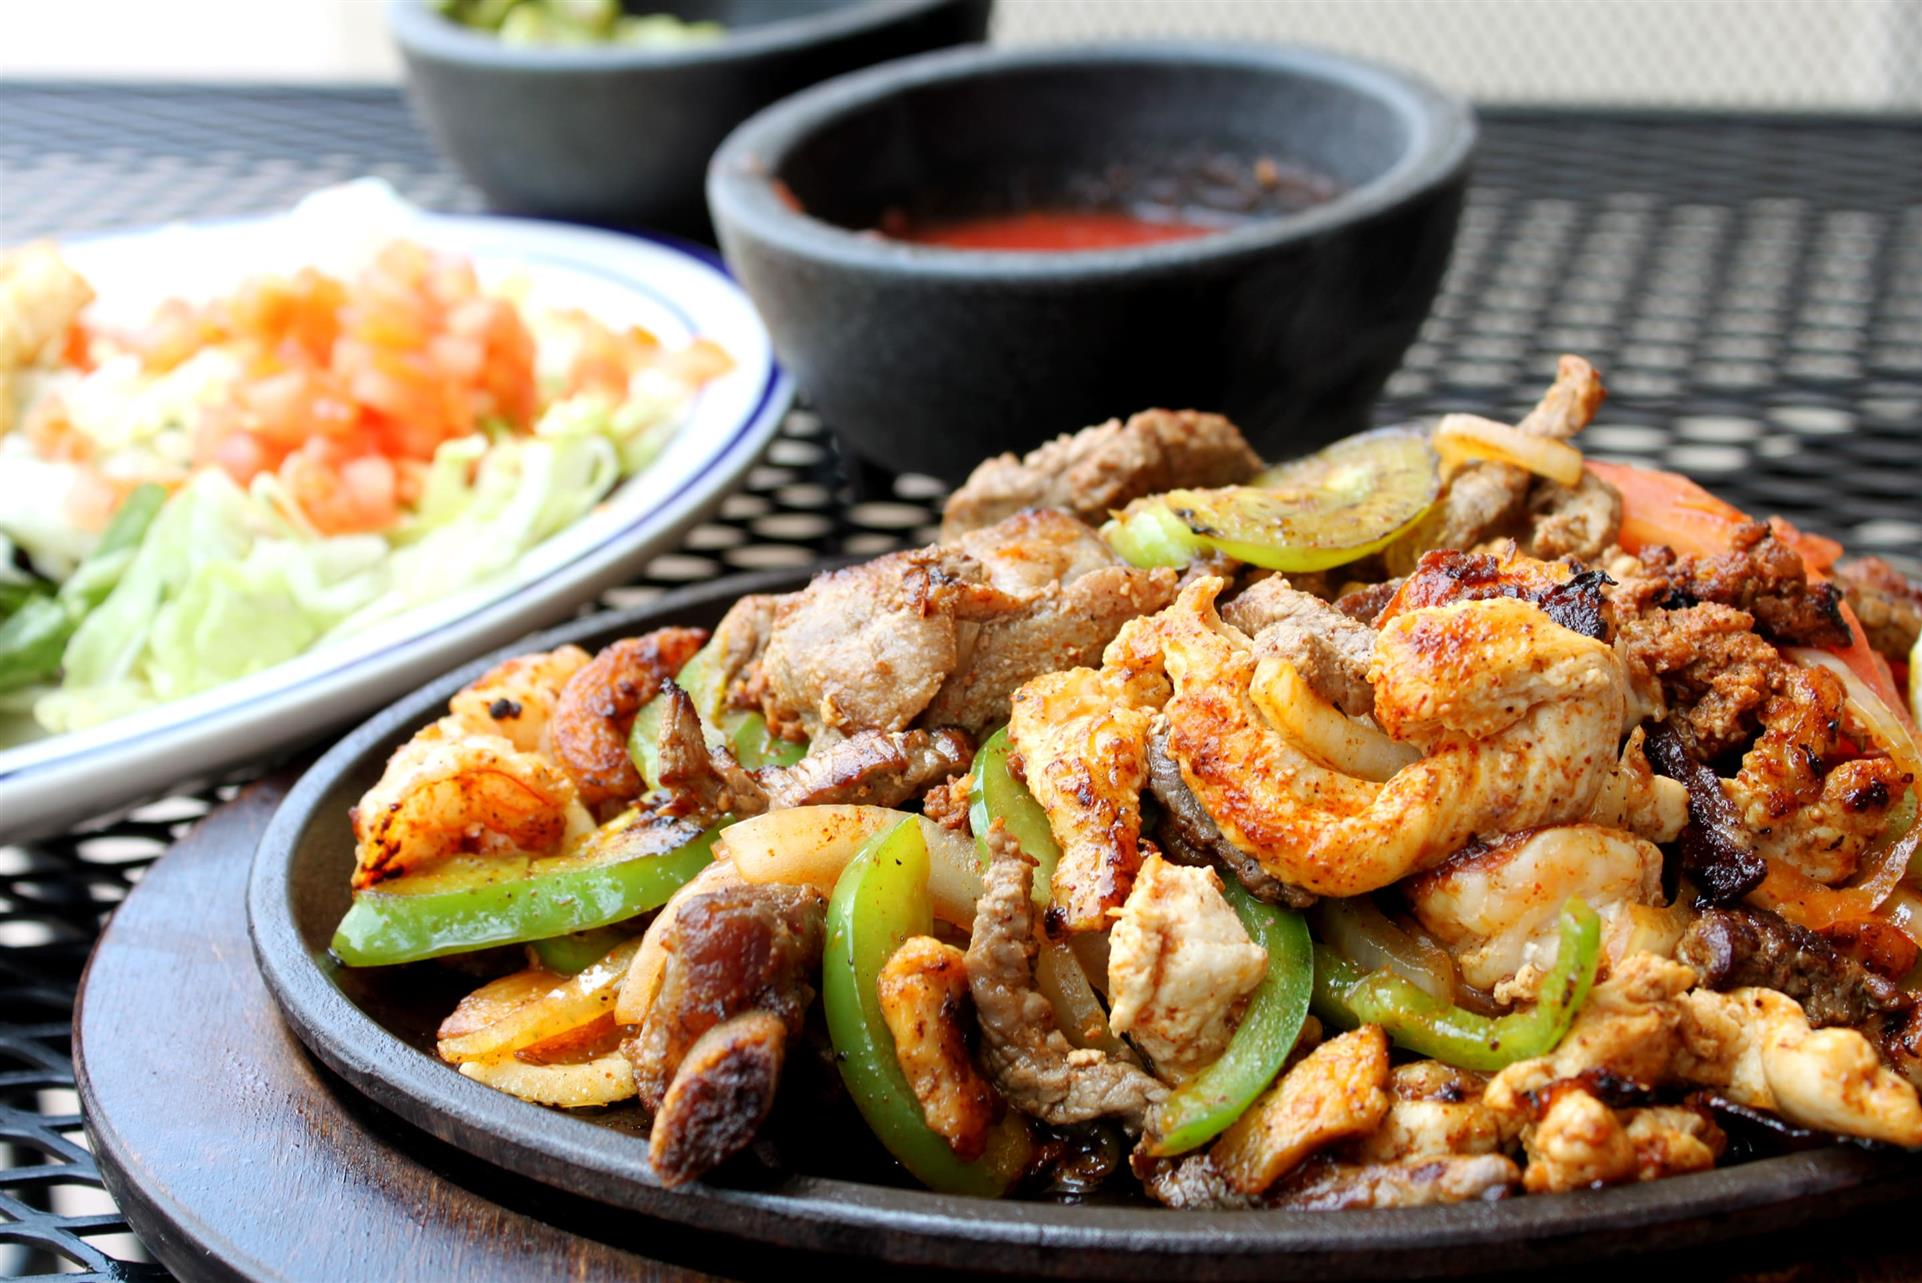 Chicken fajita on a skillet with peppers and onions and a small bowl of salsa